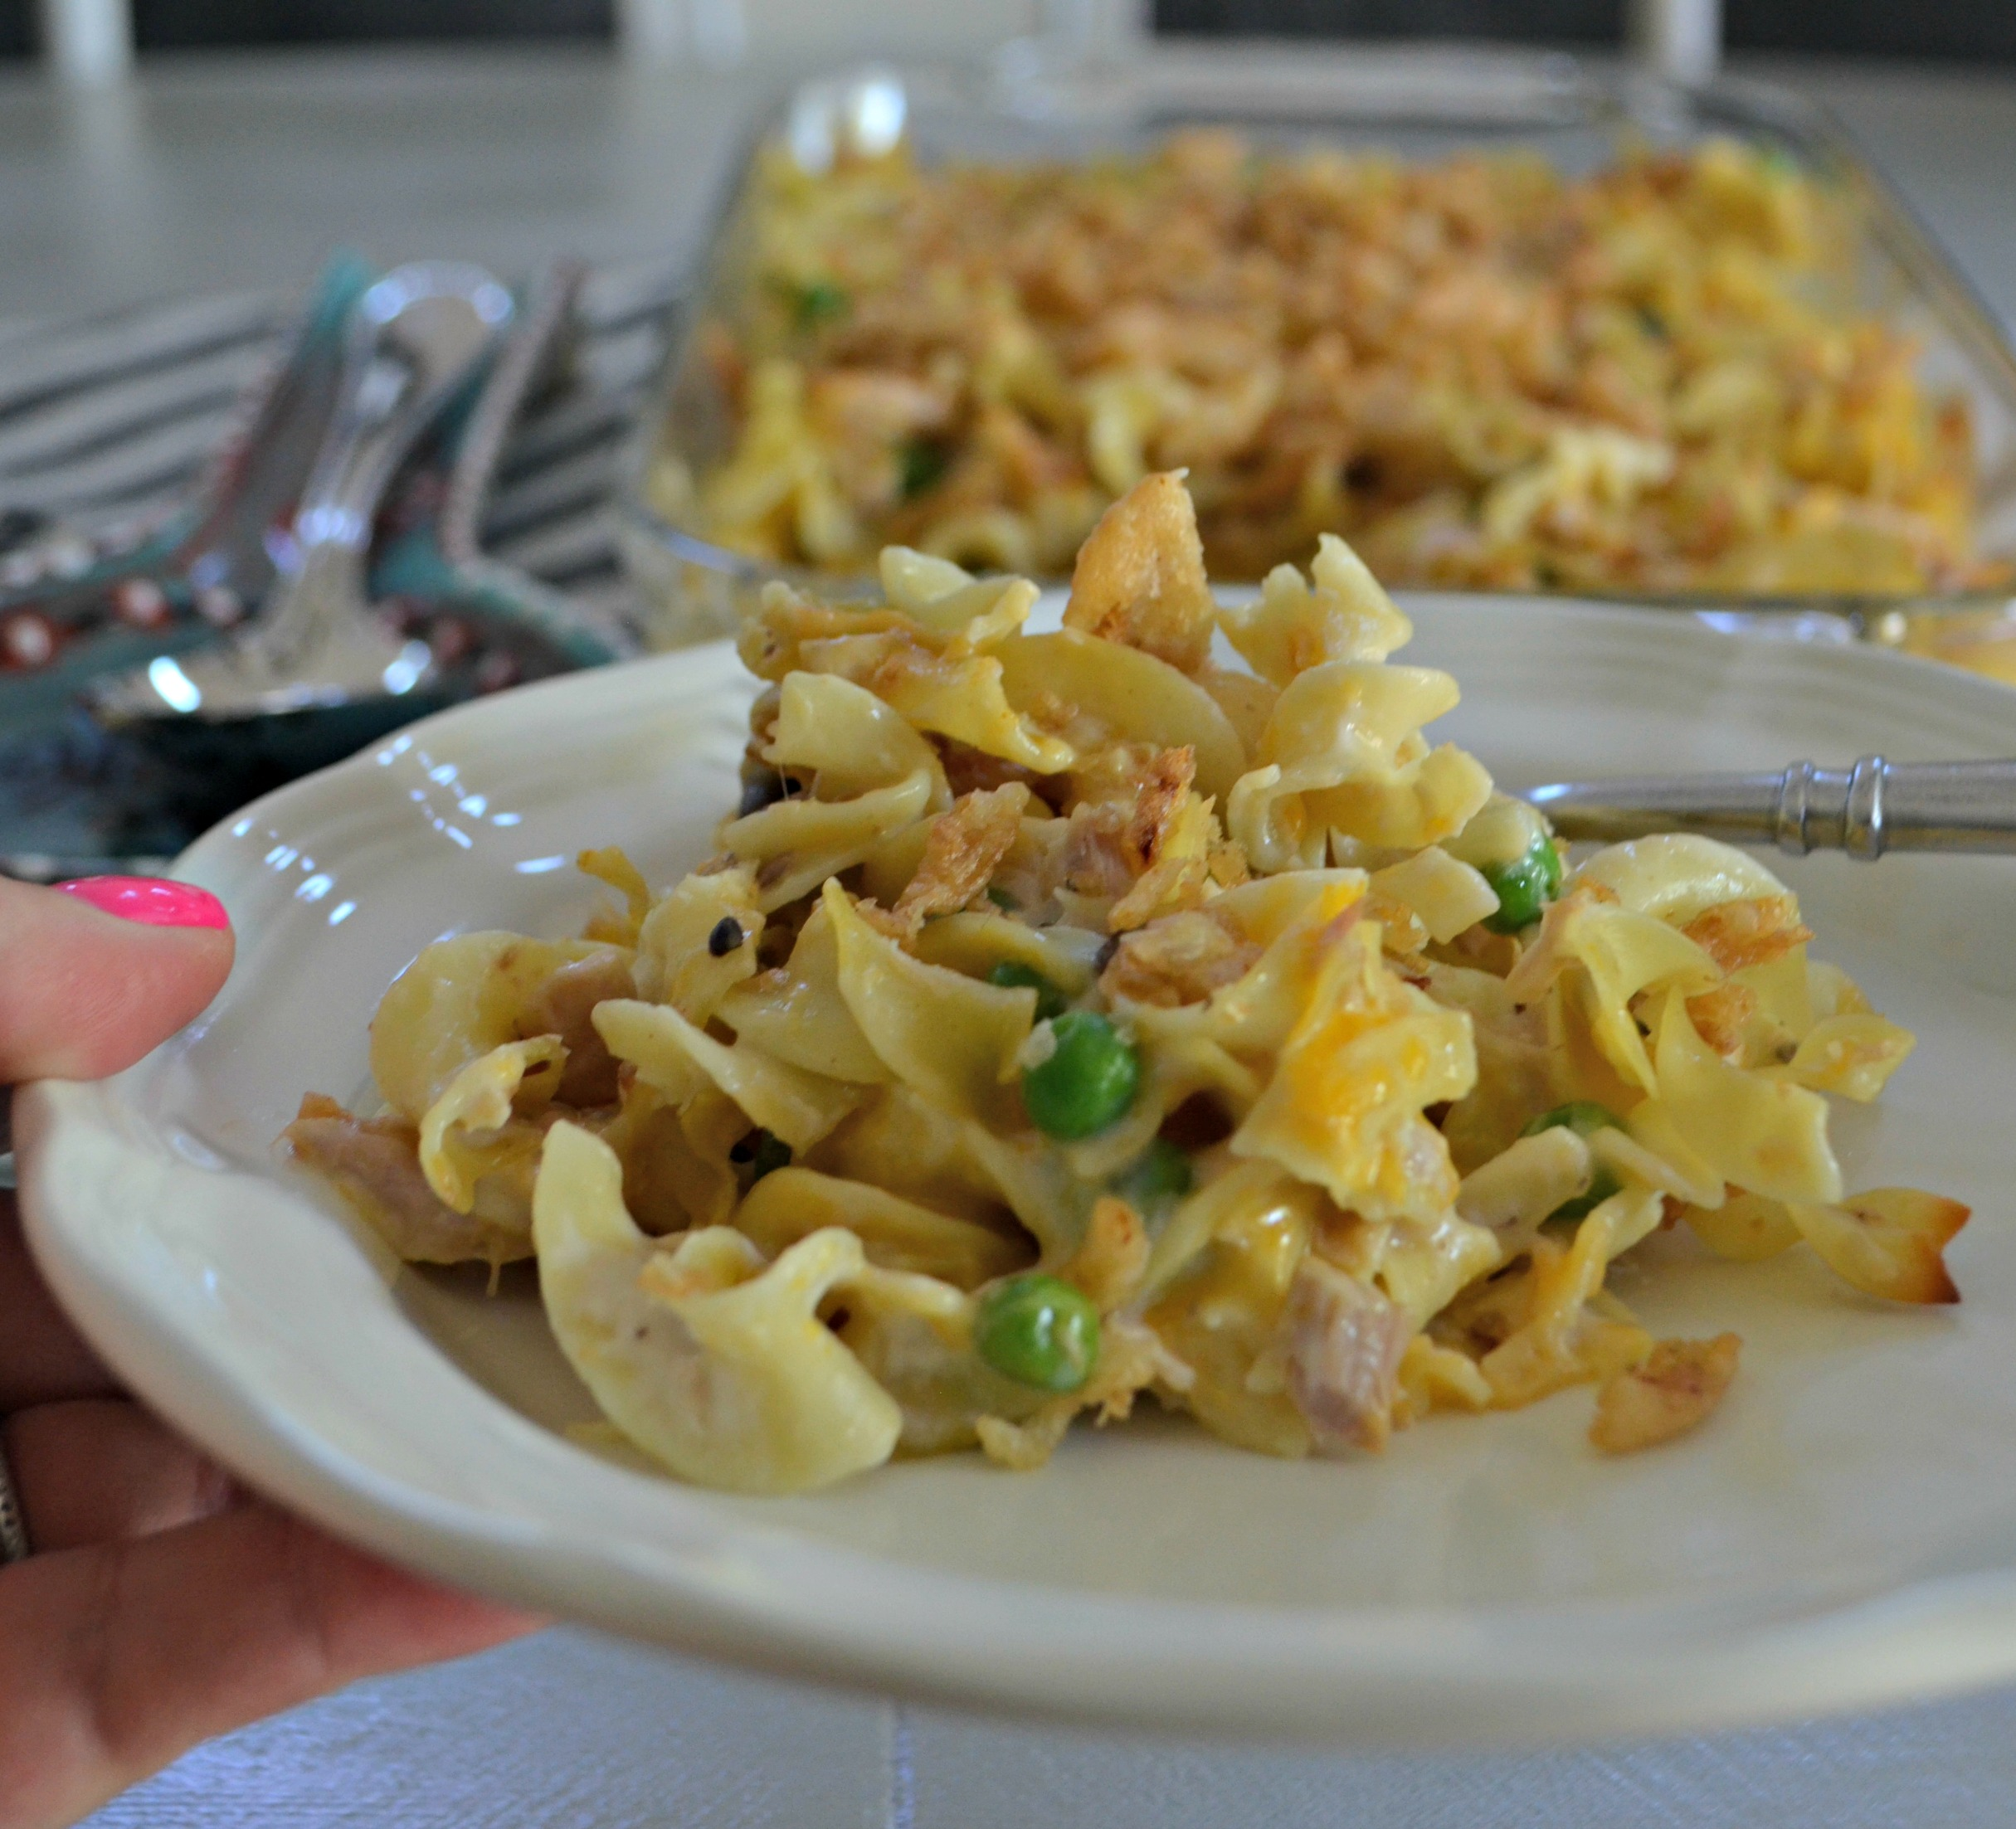 tuna noodle casserole is one of our favorite childhood recipes – The cooked casserole on a plate